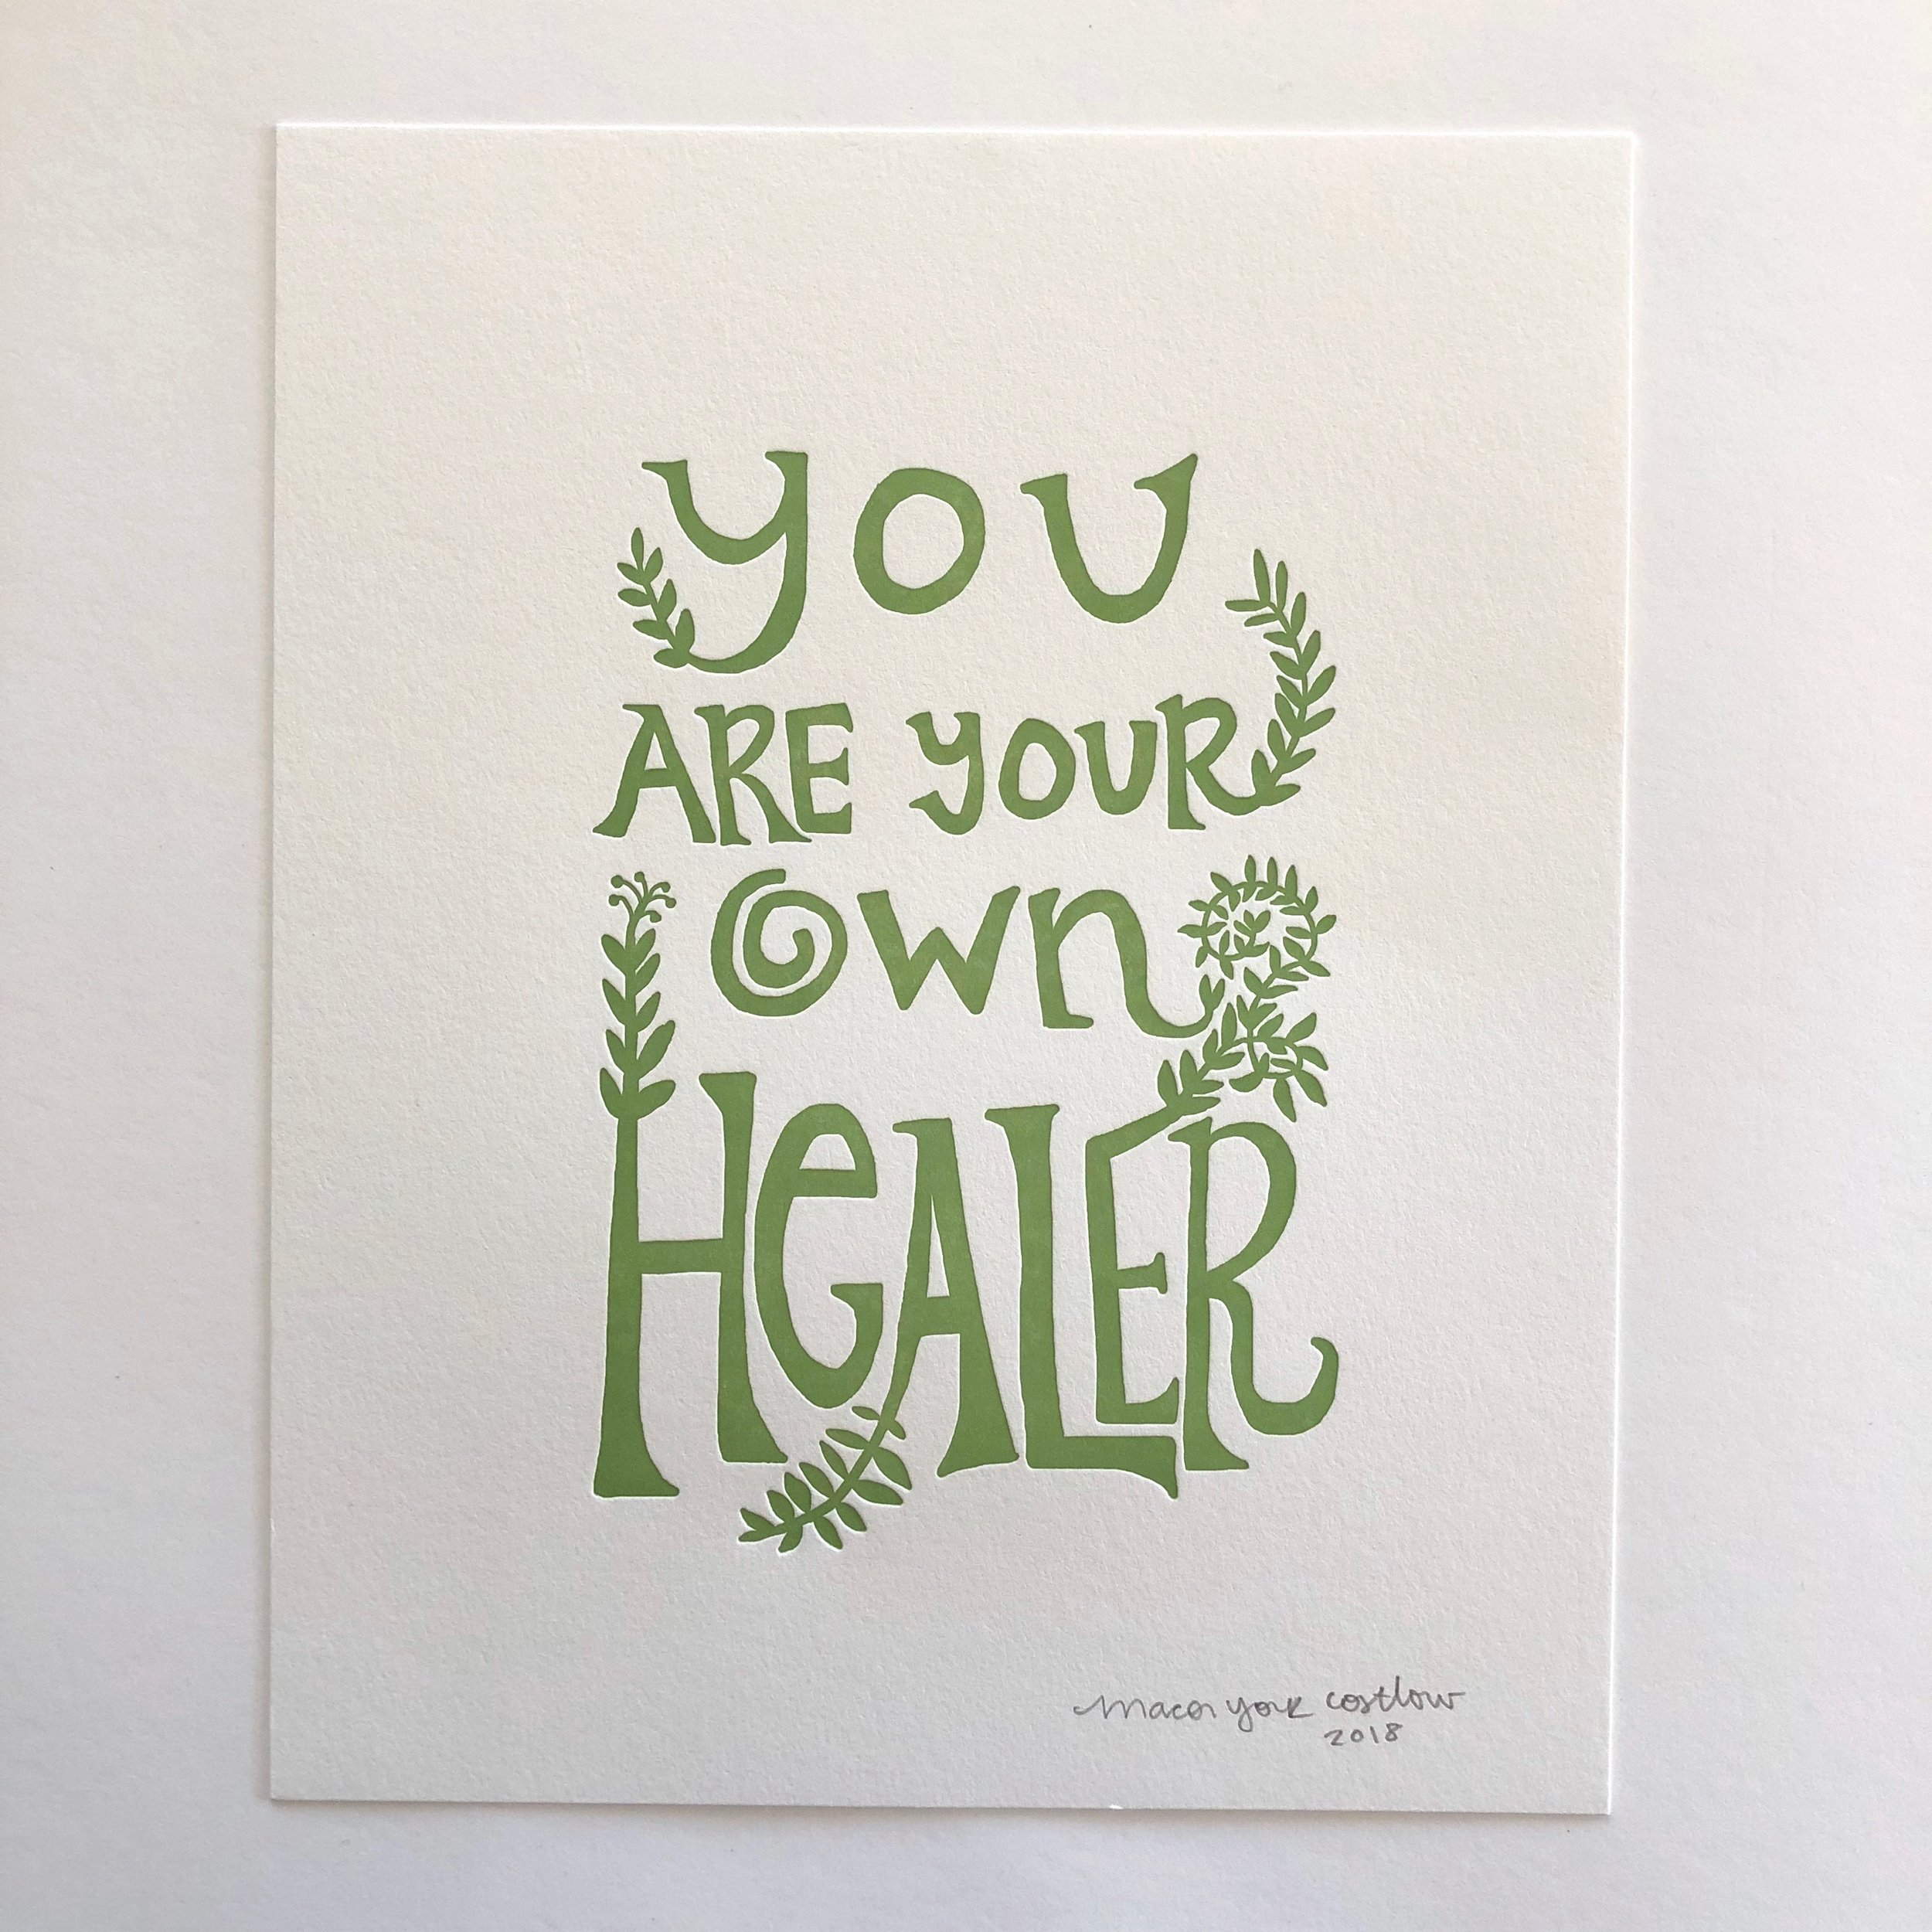 YOU ARE YOUR OWN HEALER     Hand-lettering and artwork. Printed in a rich green ink.